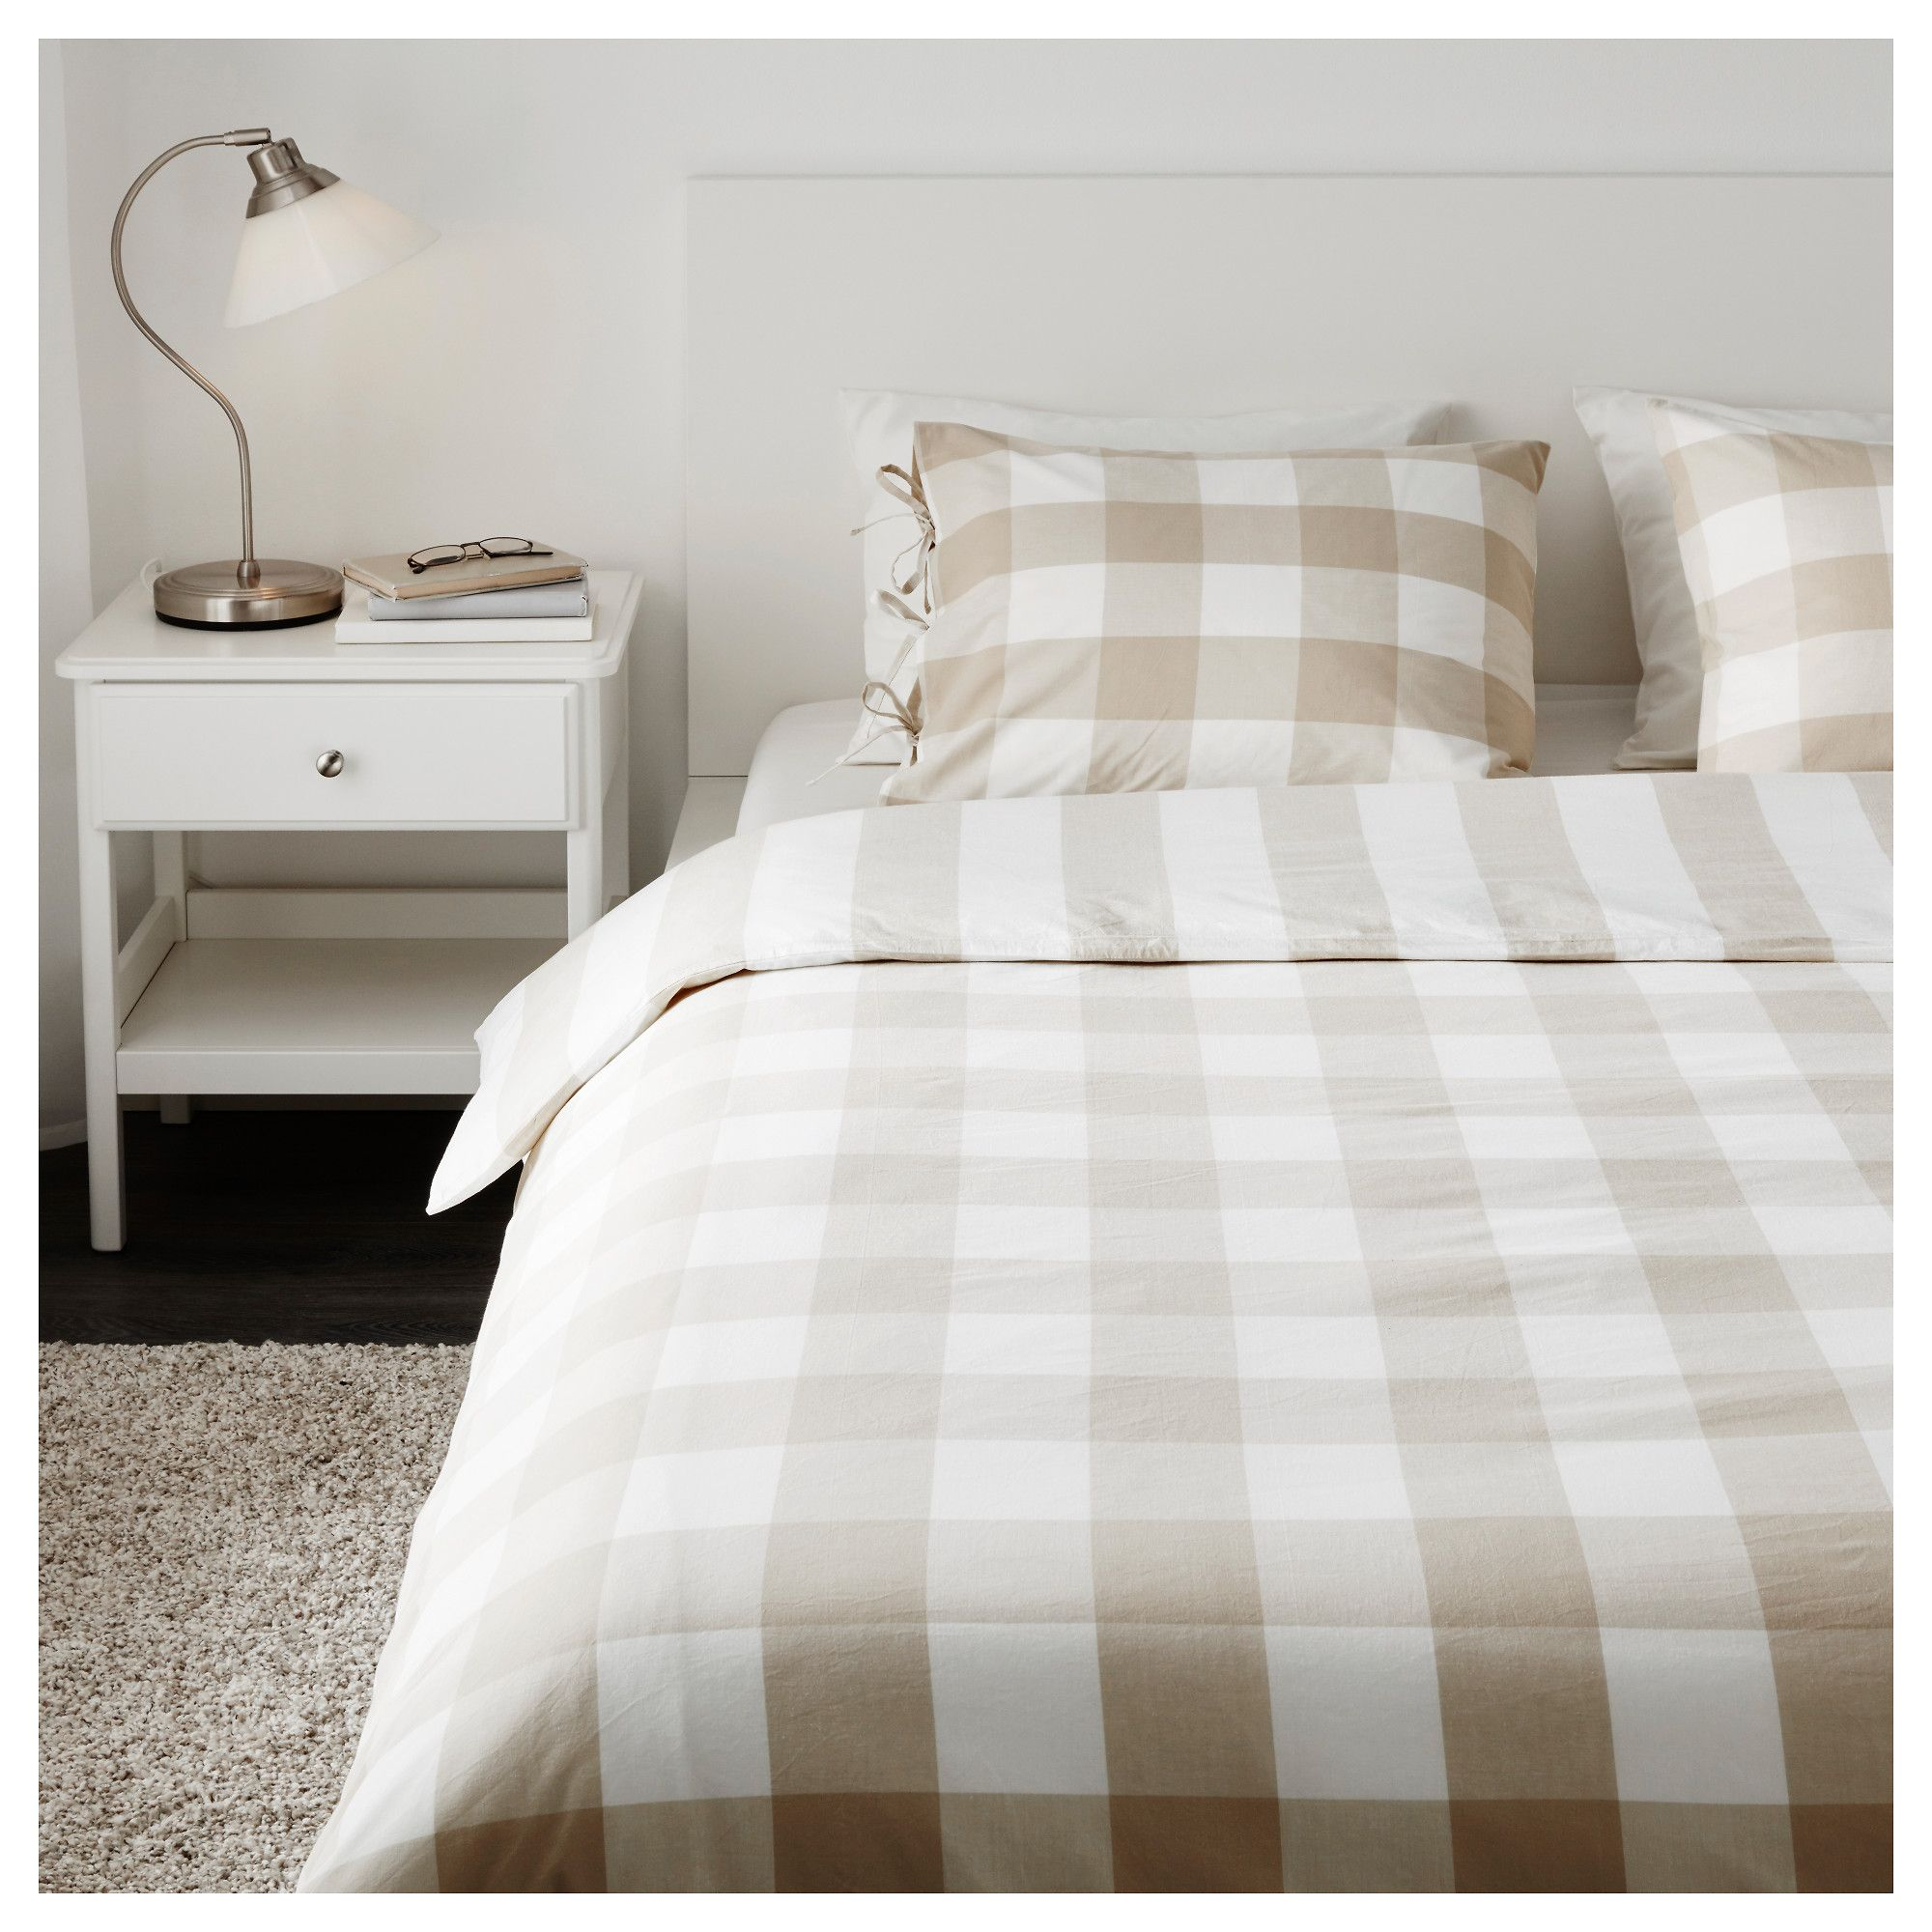 Ikea Bed Sheets Furniture And Home Furnishings | Products | Bed Linen Sets